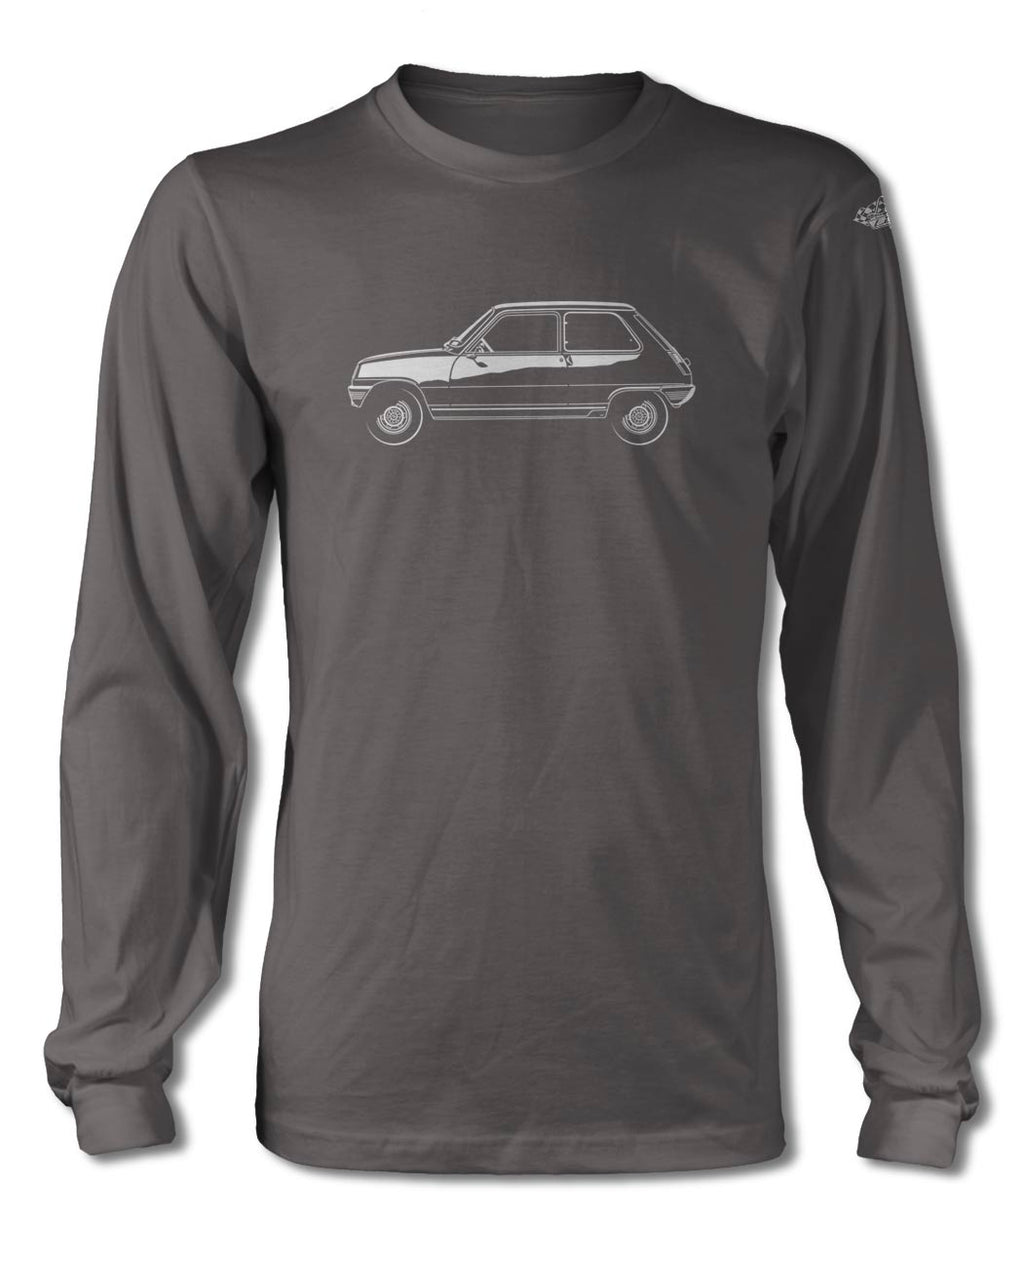 Renault 5 R5 1972 - 1985 T-Shirt - Long Sleeves - Side View